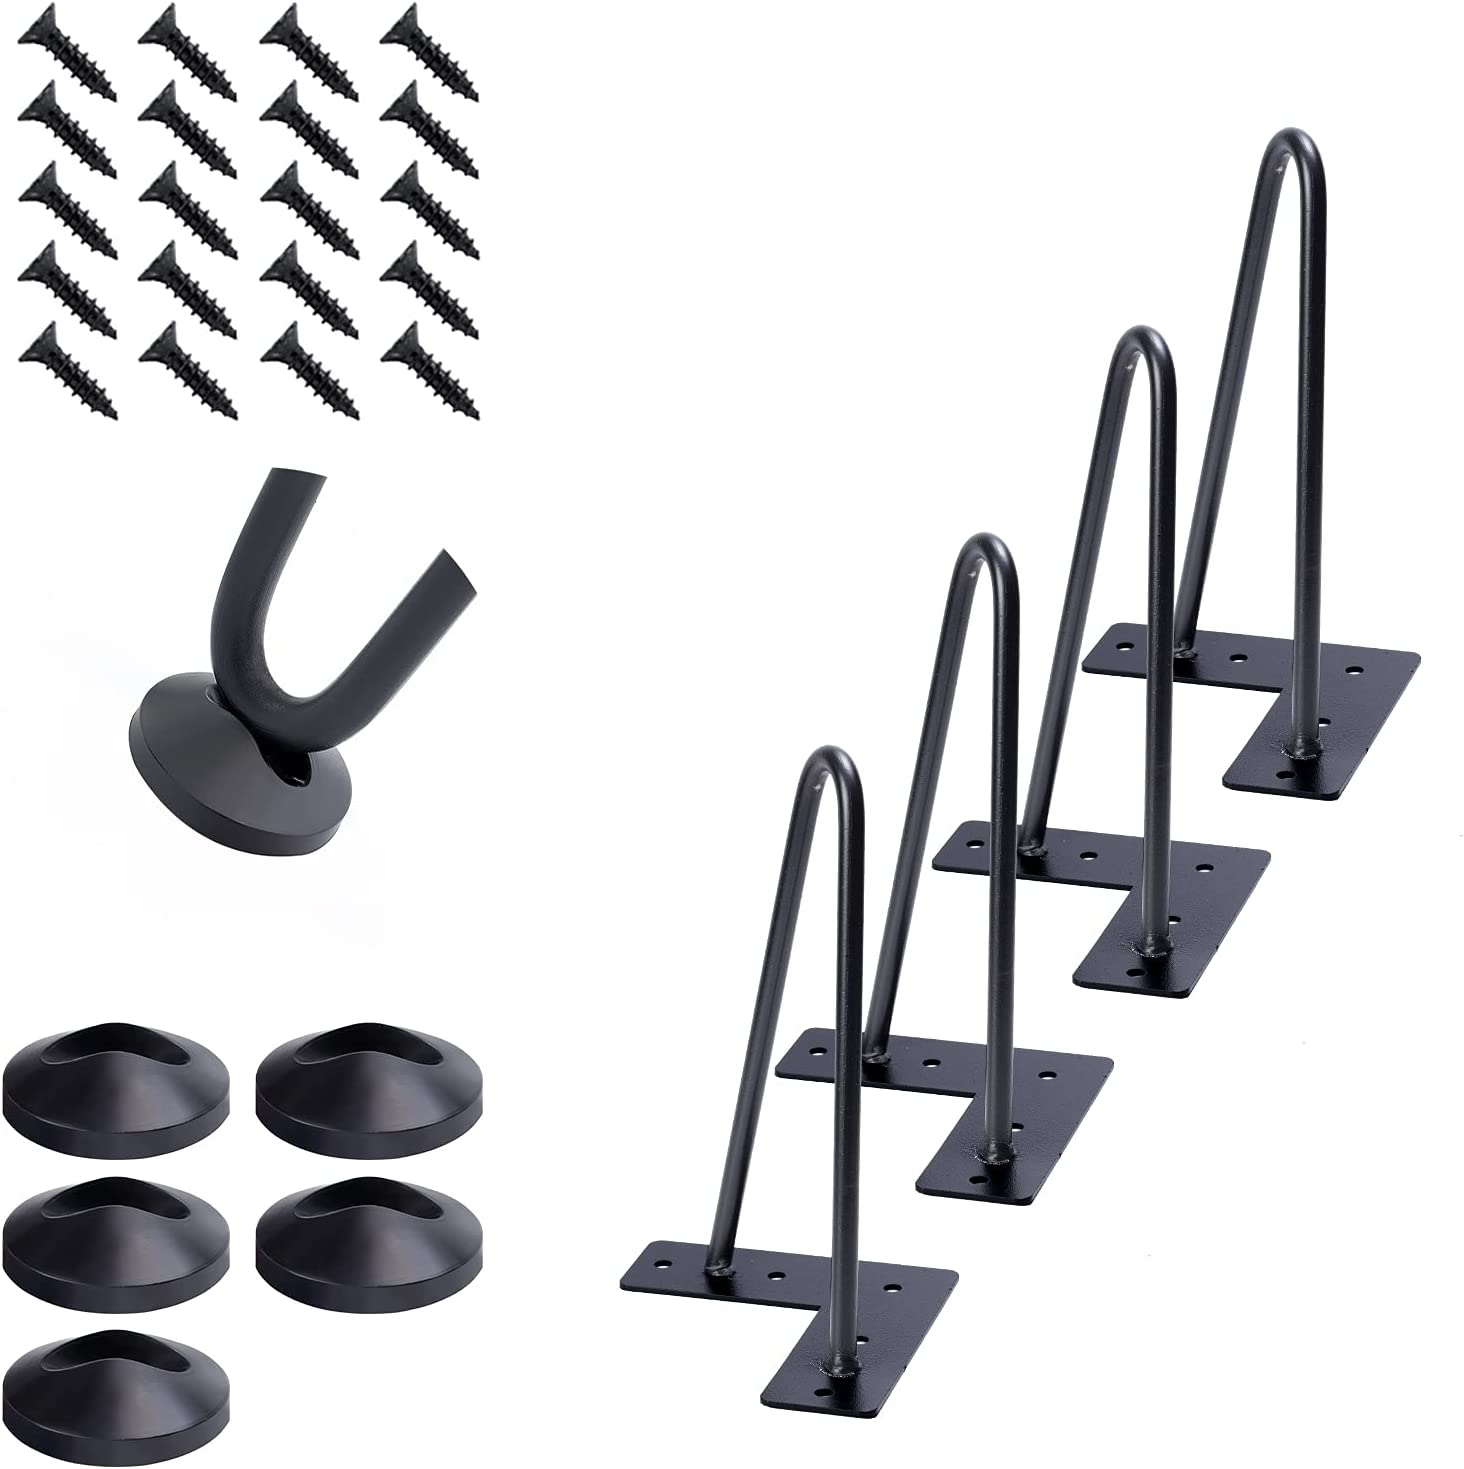 10 Inch Heavy Duty Hairpin Furniture DIY Project Max 44% OFF Legs Home Metal Max 48% OFF